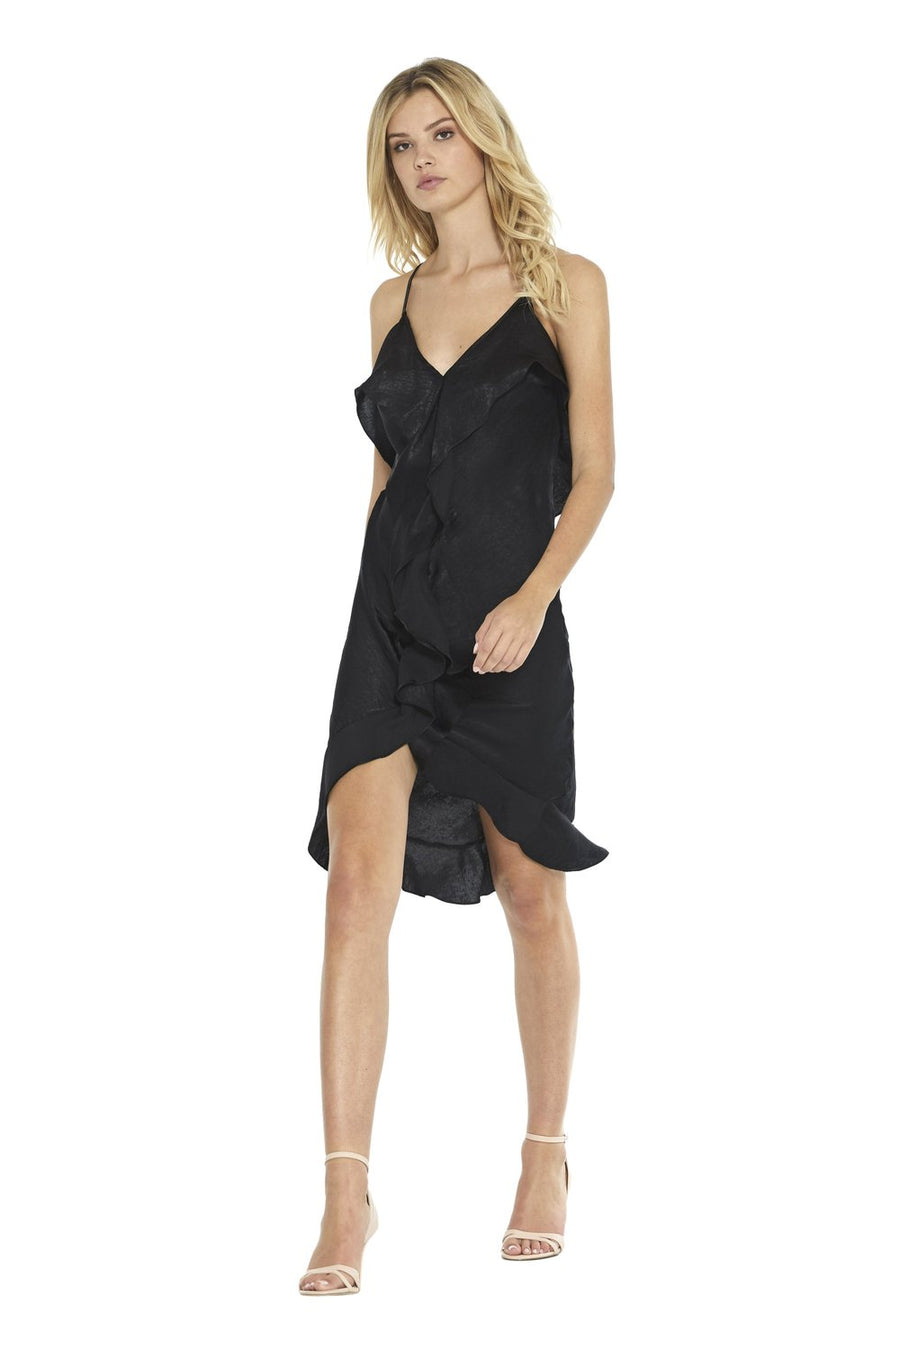 Ele Dress - Black Satin - Pavilion